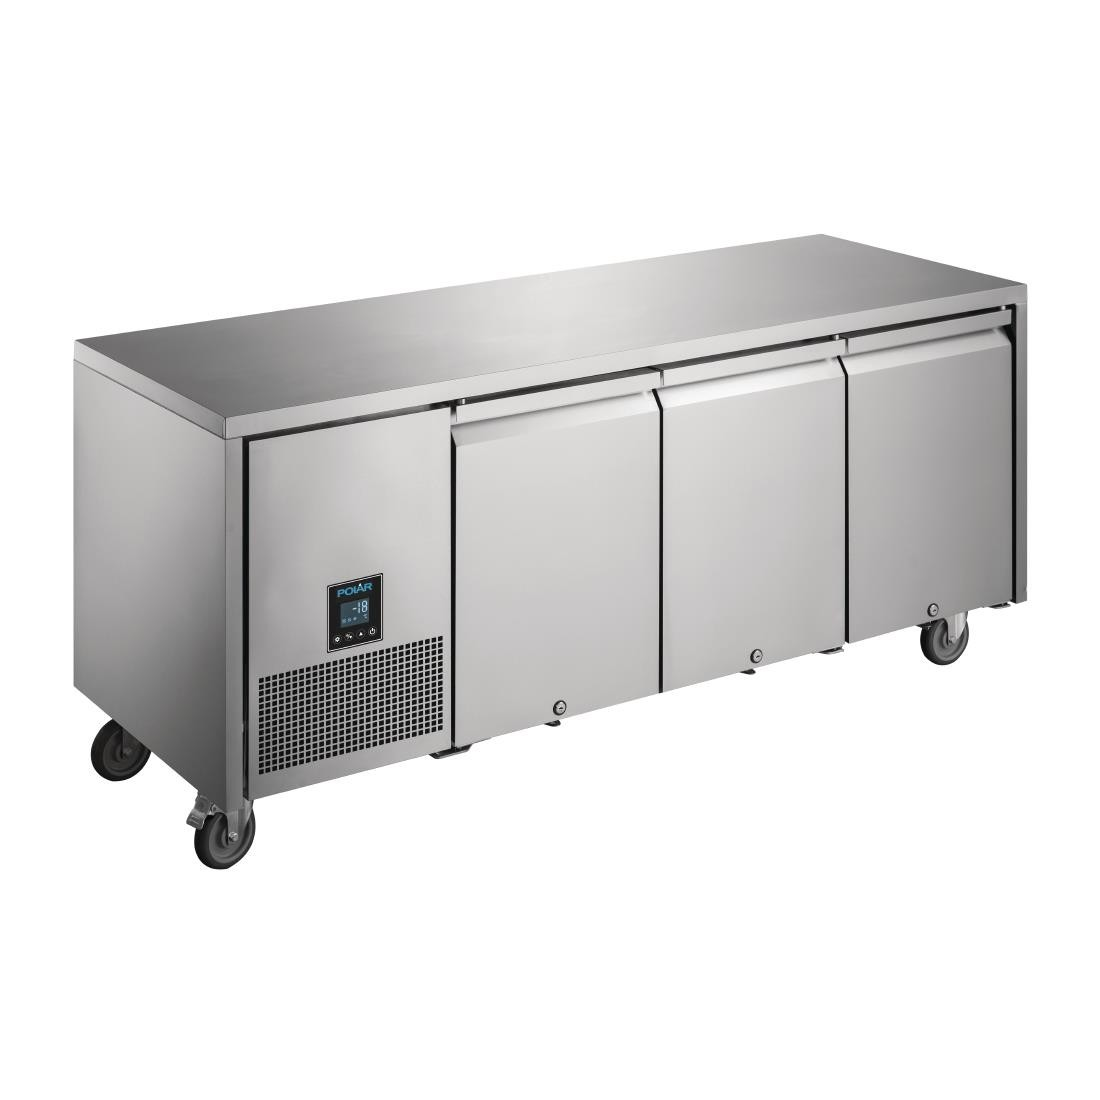 Polar UA008 U-Series Premium Triple Door Counter Freezer